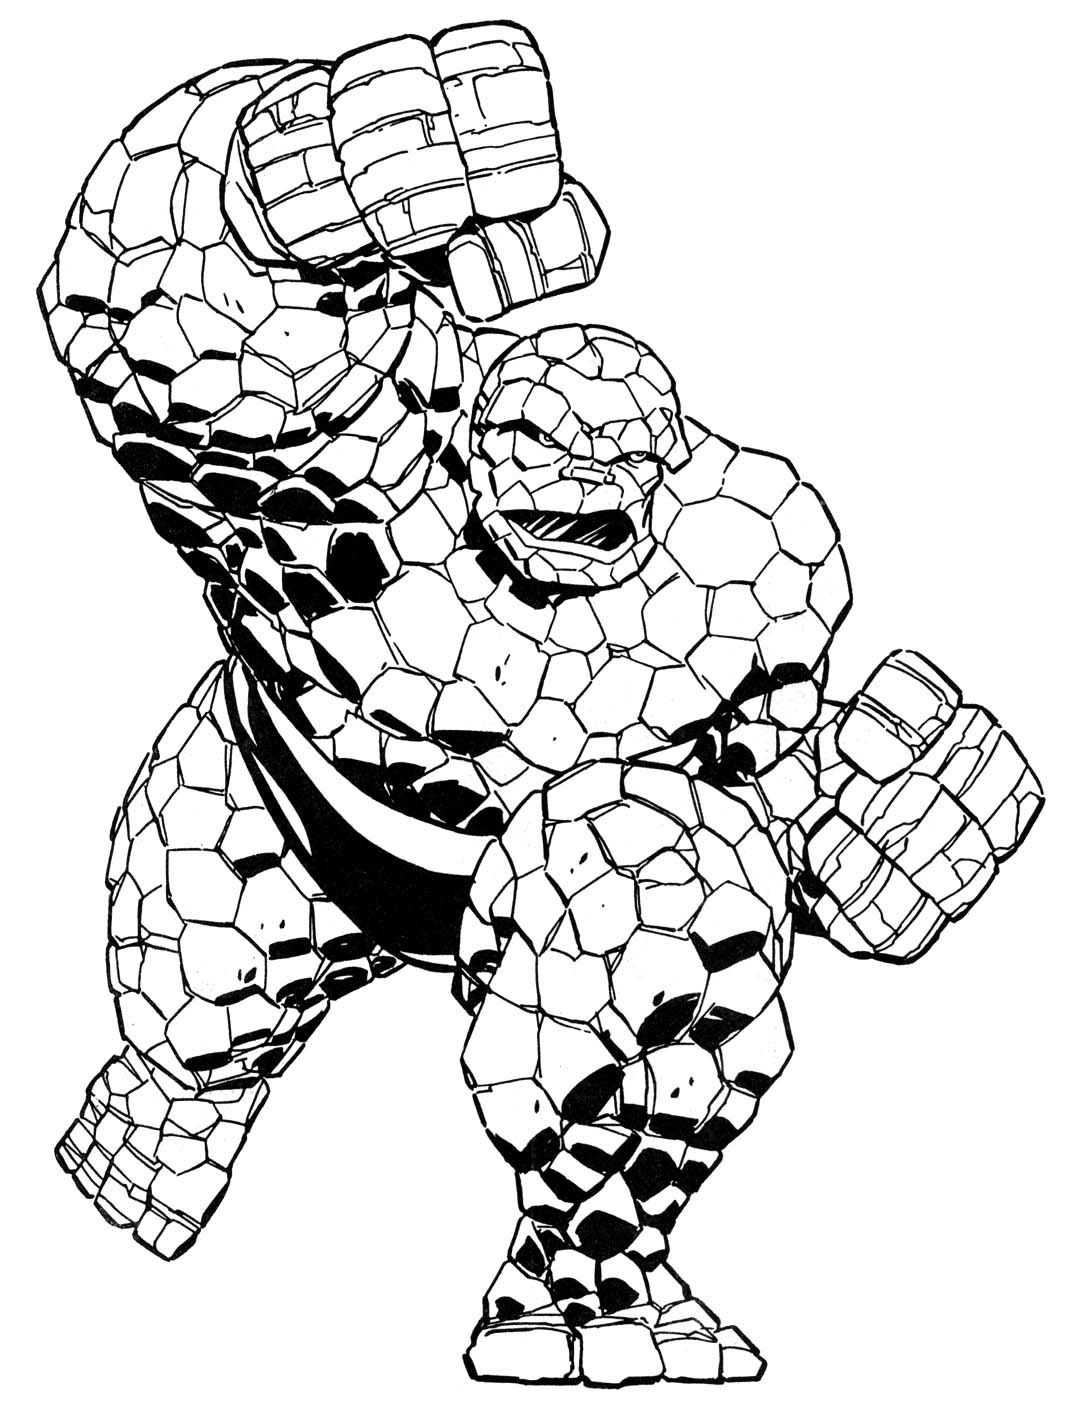 coloring pages for kids super heros coloring book marvel super heroesmarvel coloring pages pages heros super kids coloring for